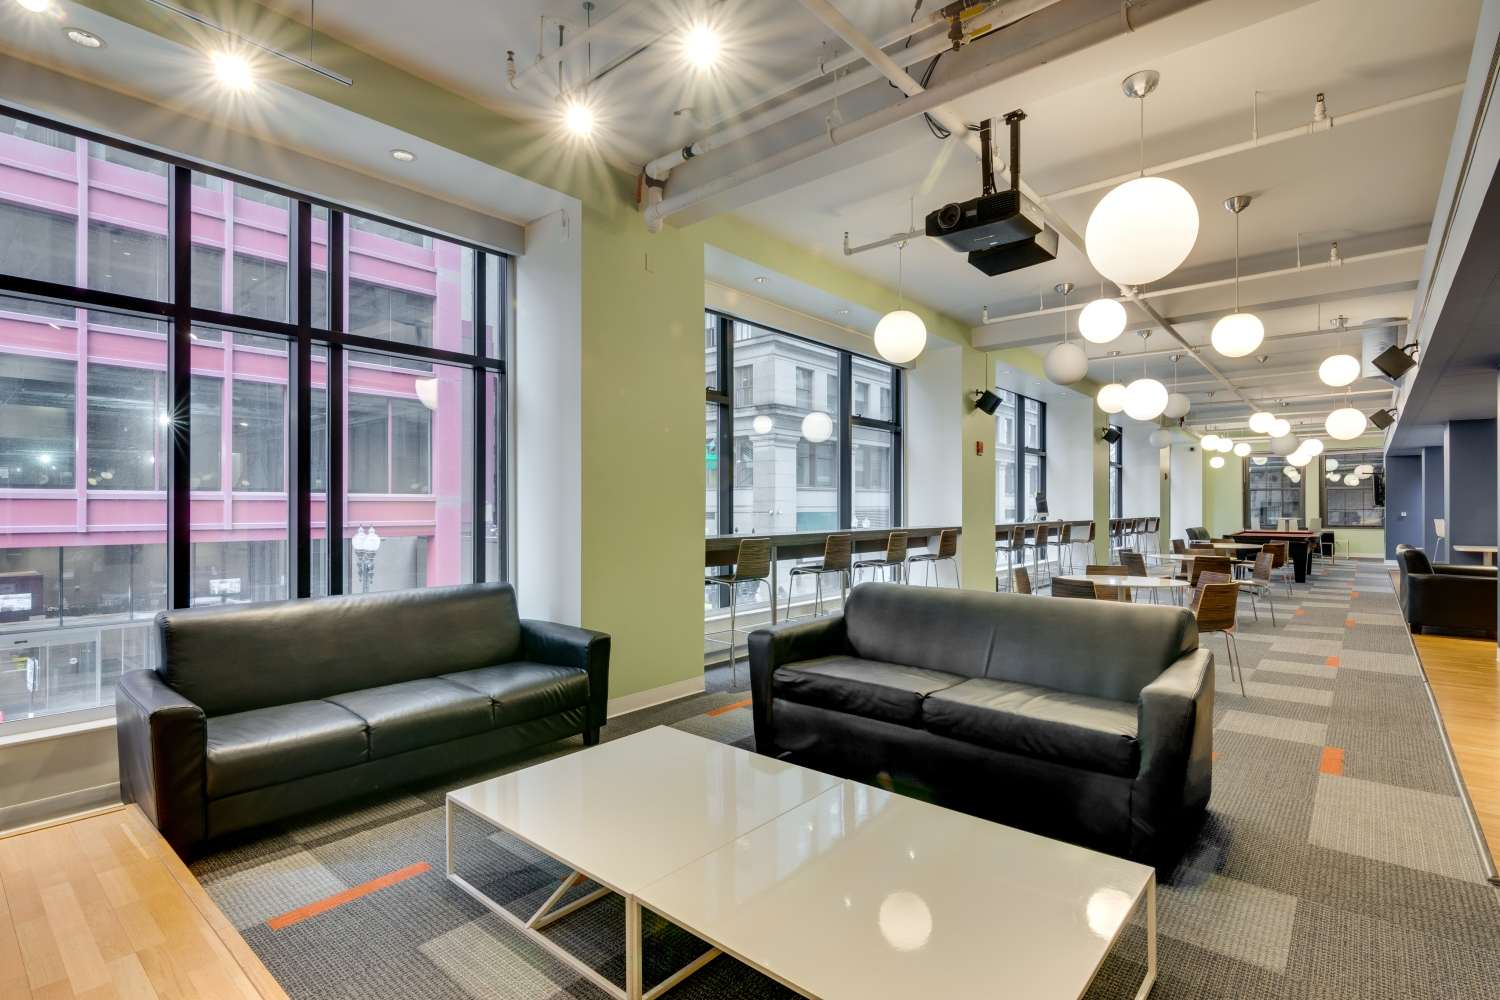 The-Bunkingham-Chicago-Apartments-Chicago-IL-Common-Space-2-Unilodgers